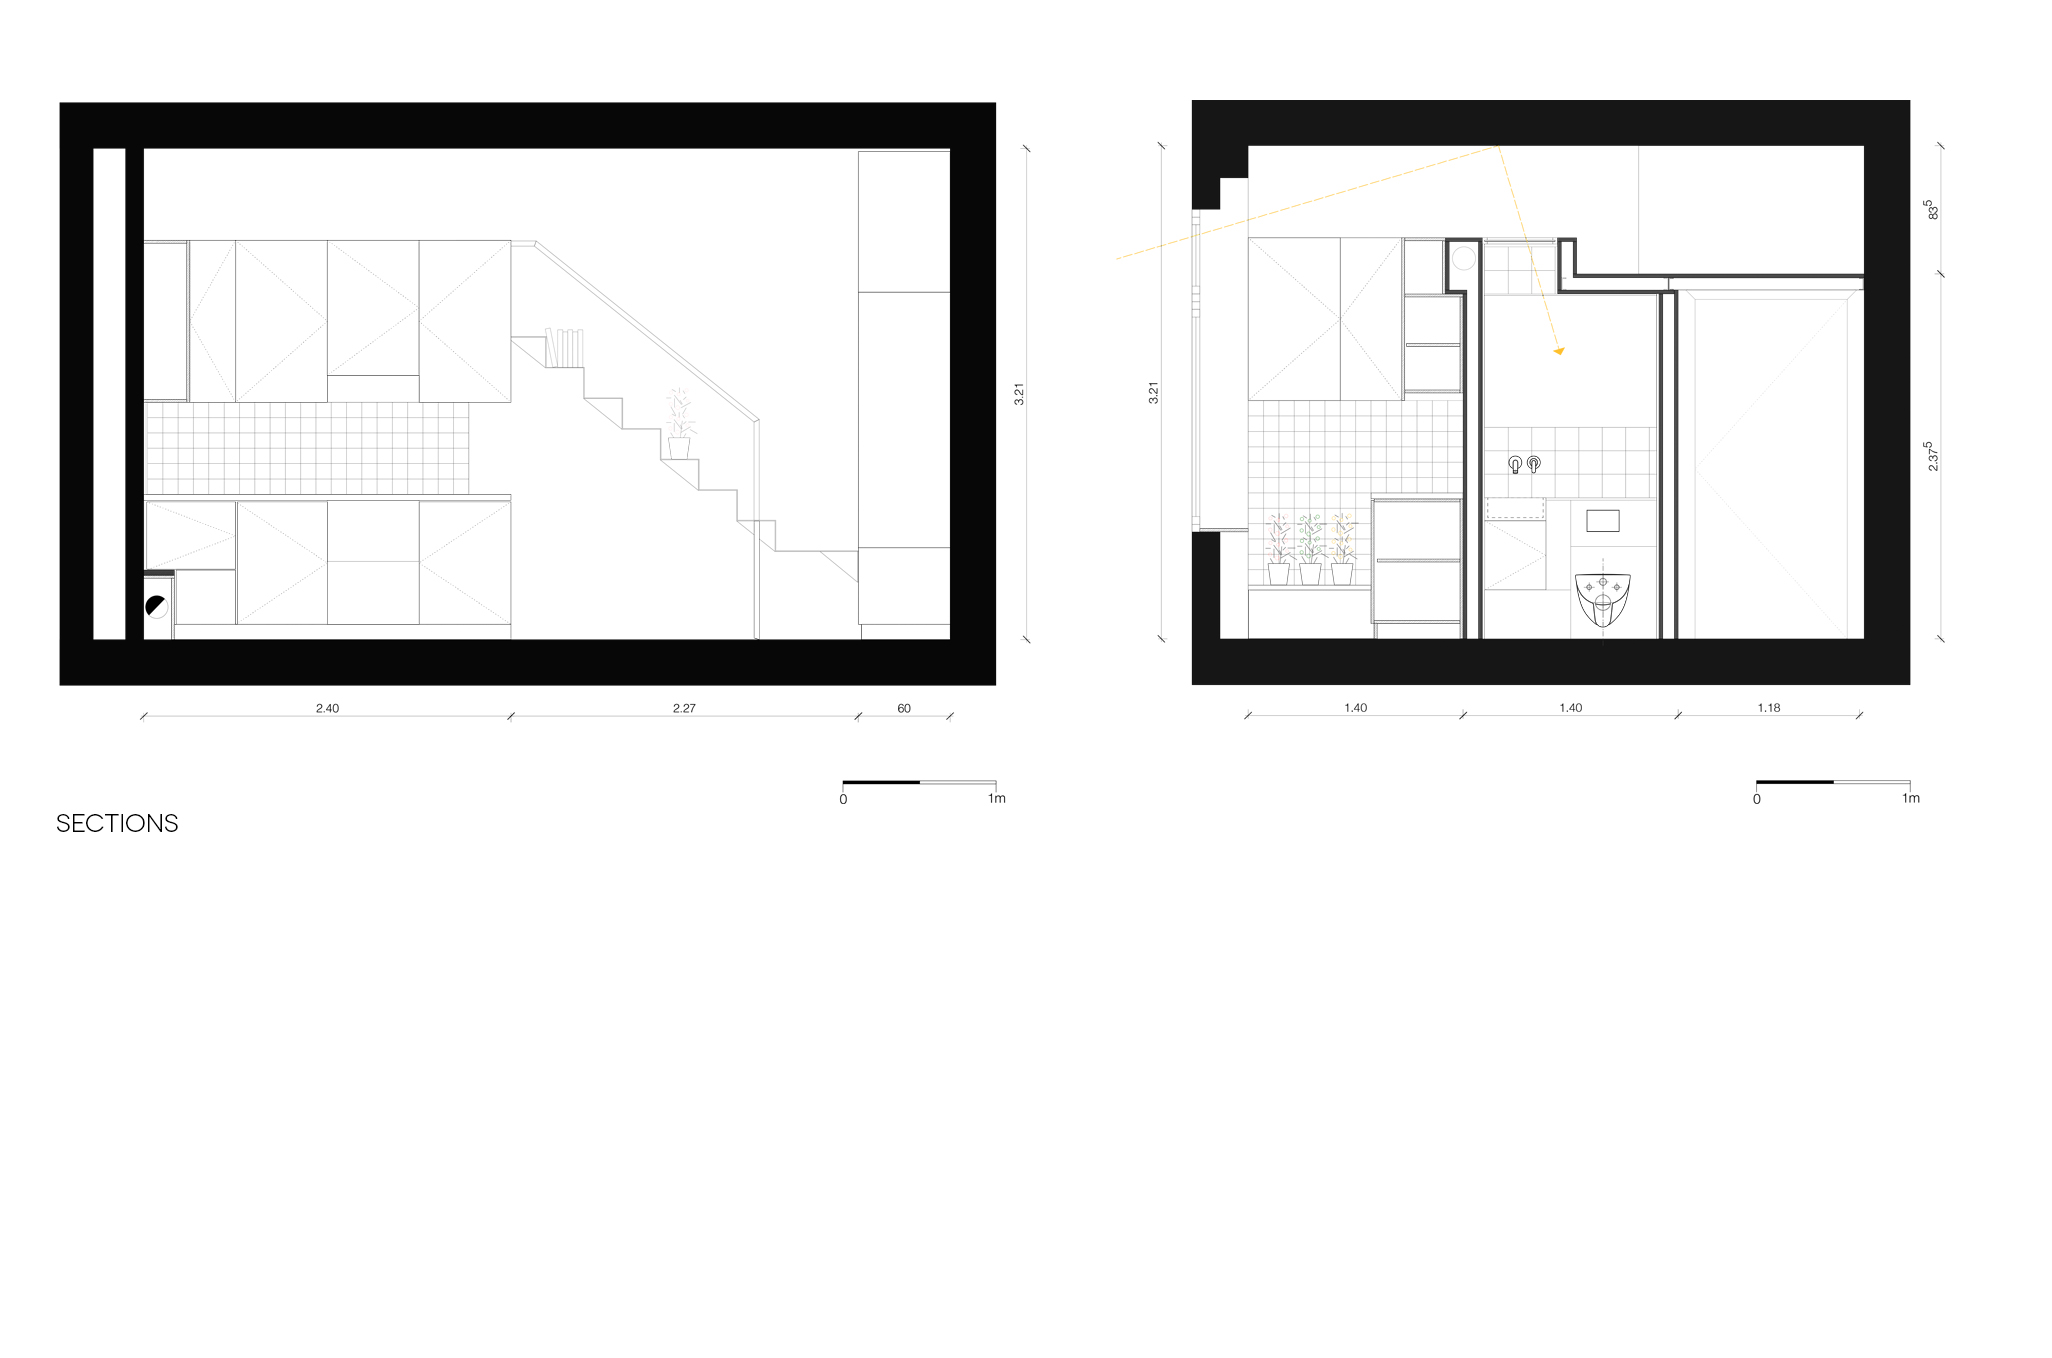 Paola_Bagna_Refurbishment_Micro_Apartment_Berlin_Moabit_plan_2